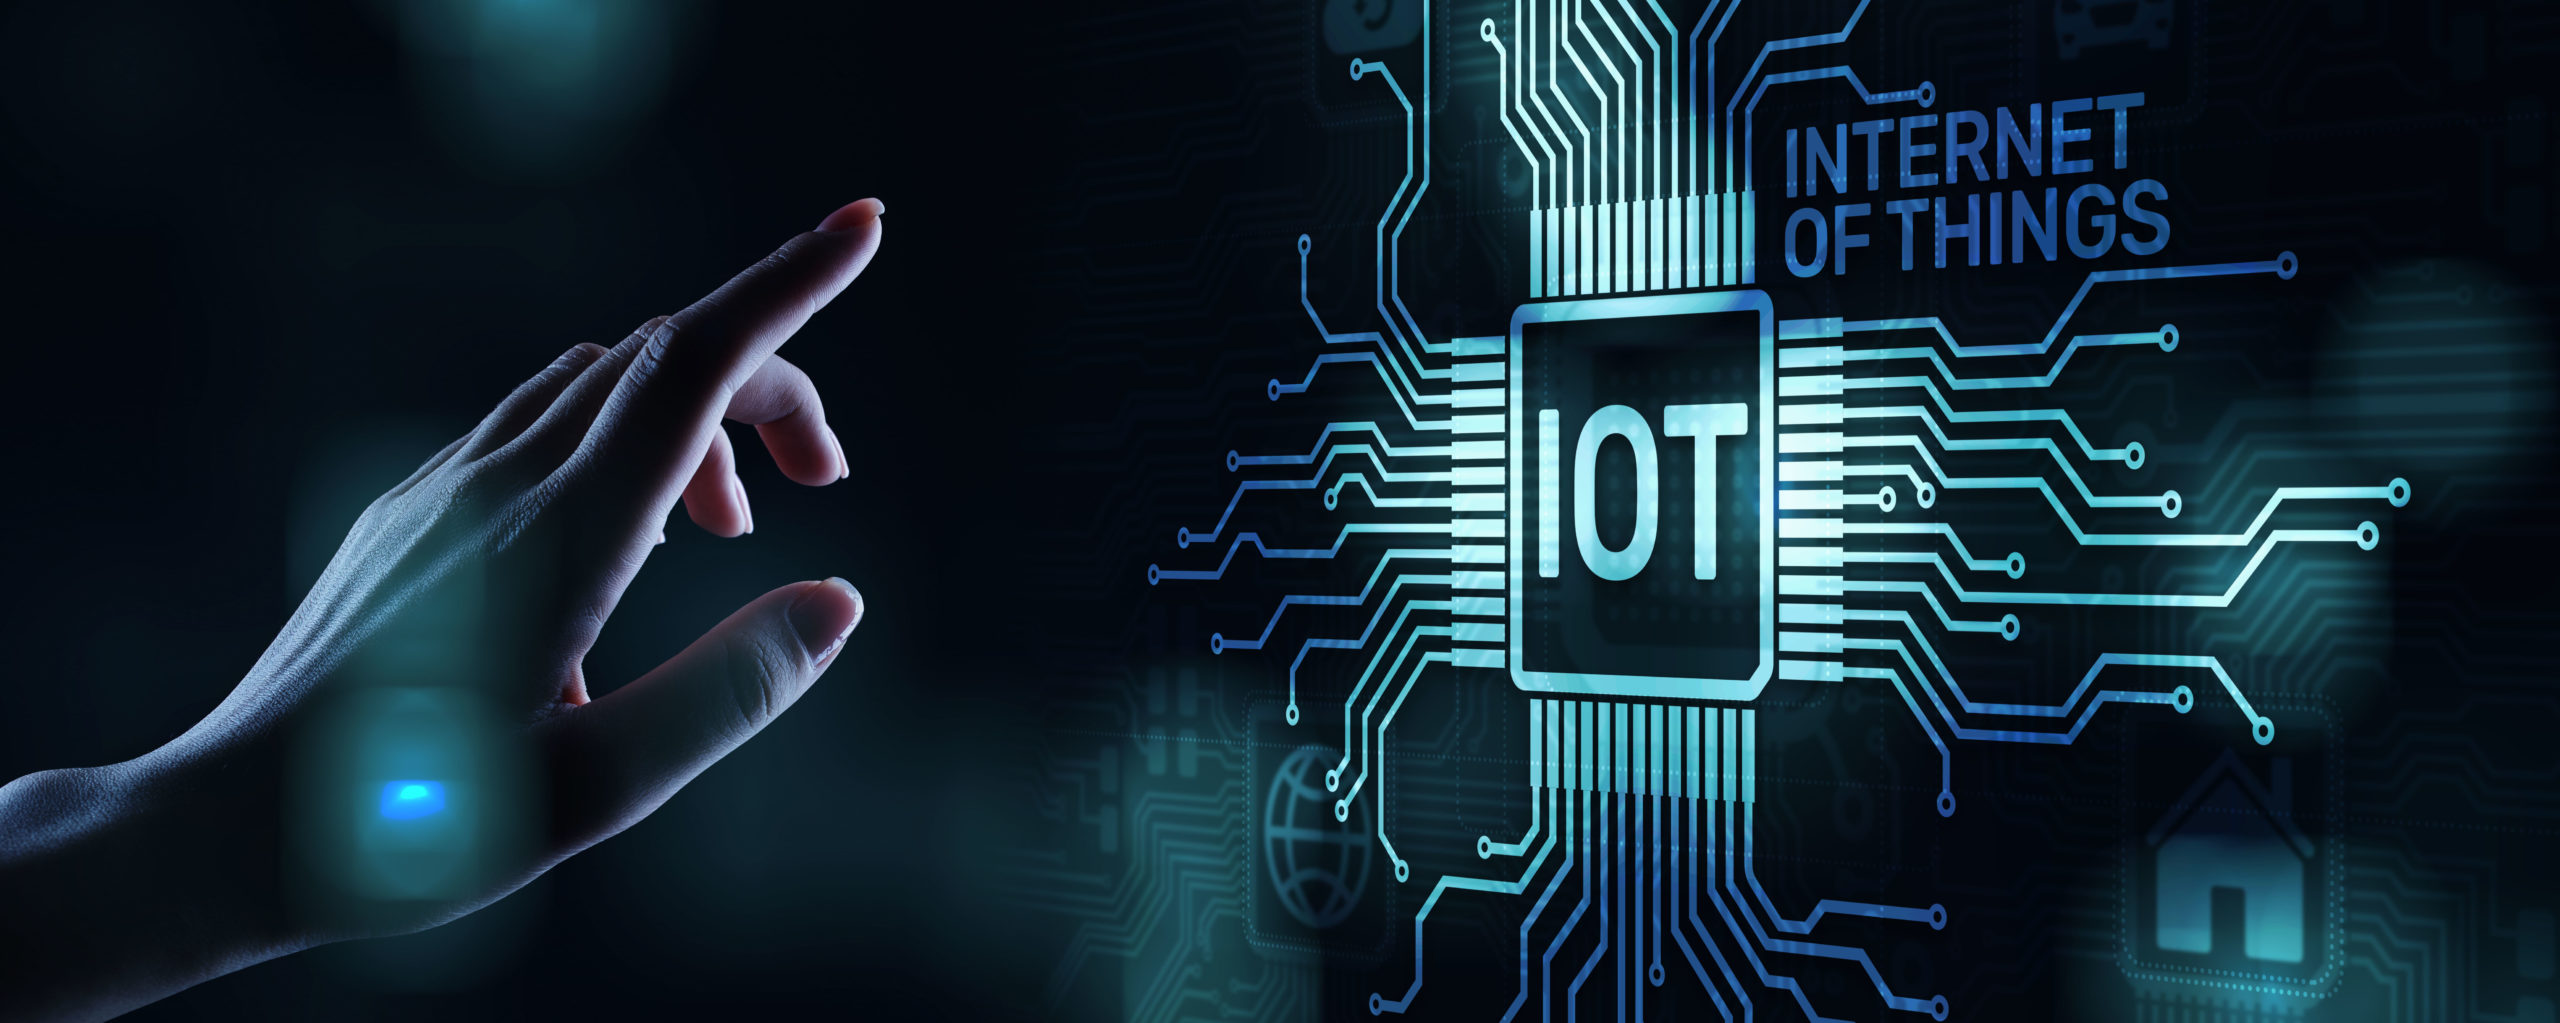 IOT Internet of things Digital transformation Modern Technology concept on virtual screen